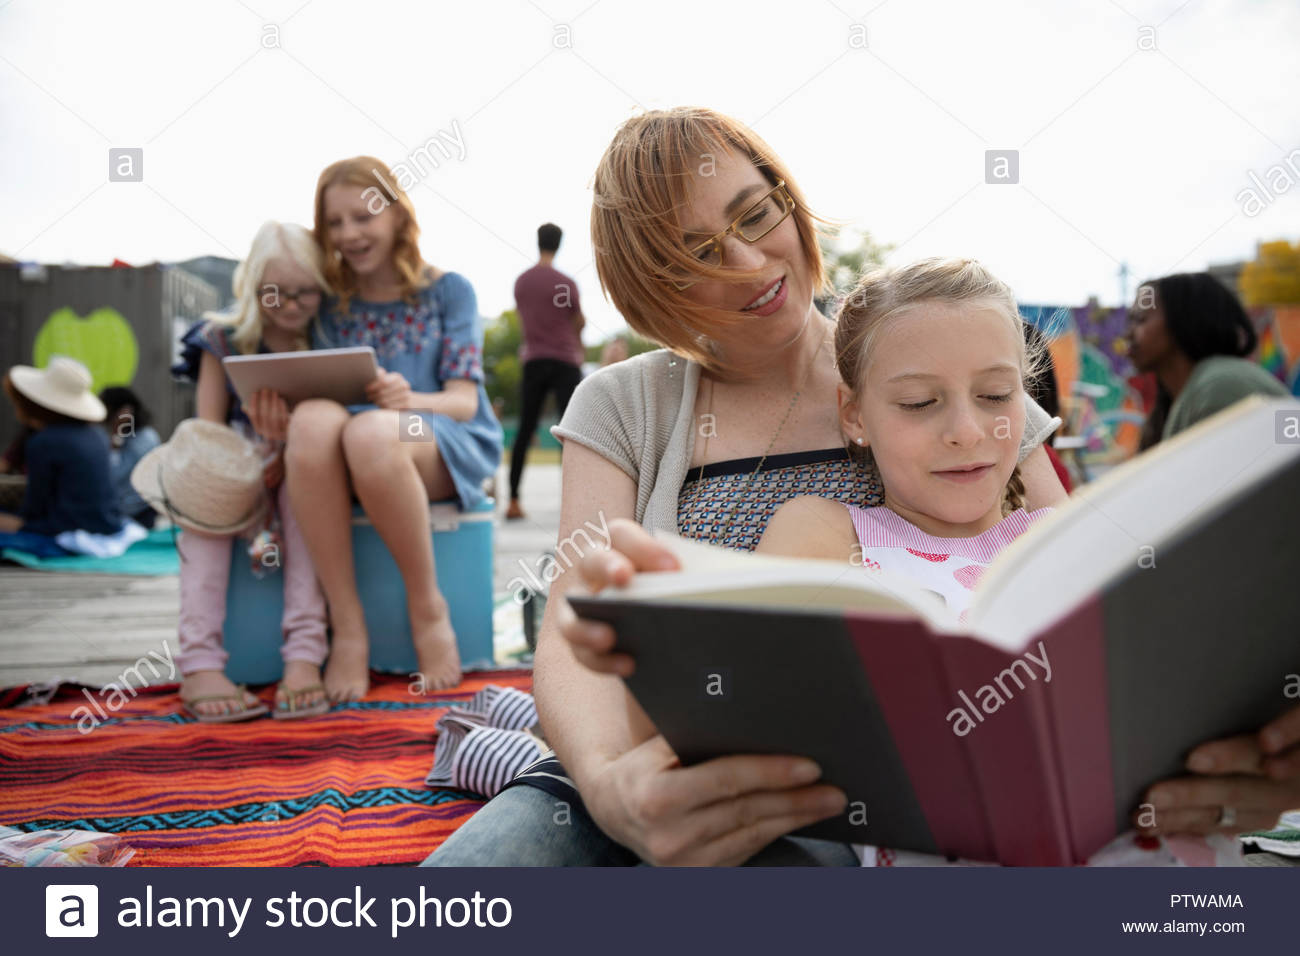 Mother and Daughter reading book in park Photo Stock